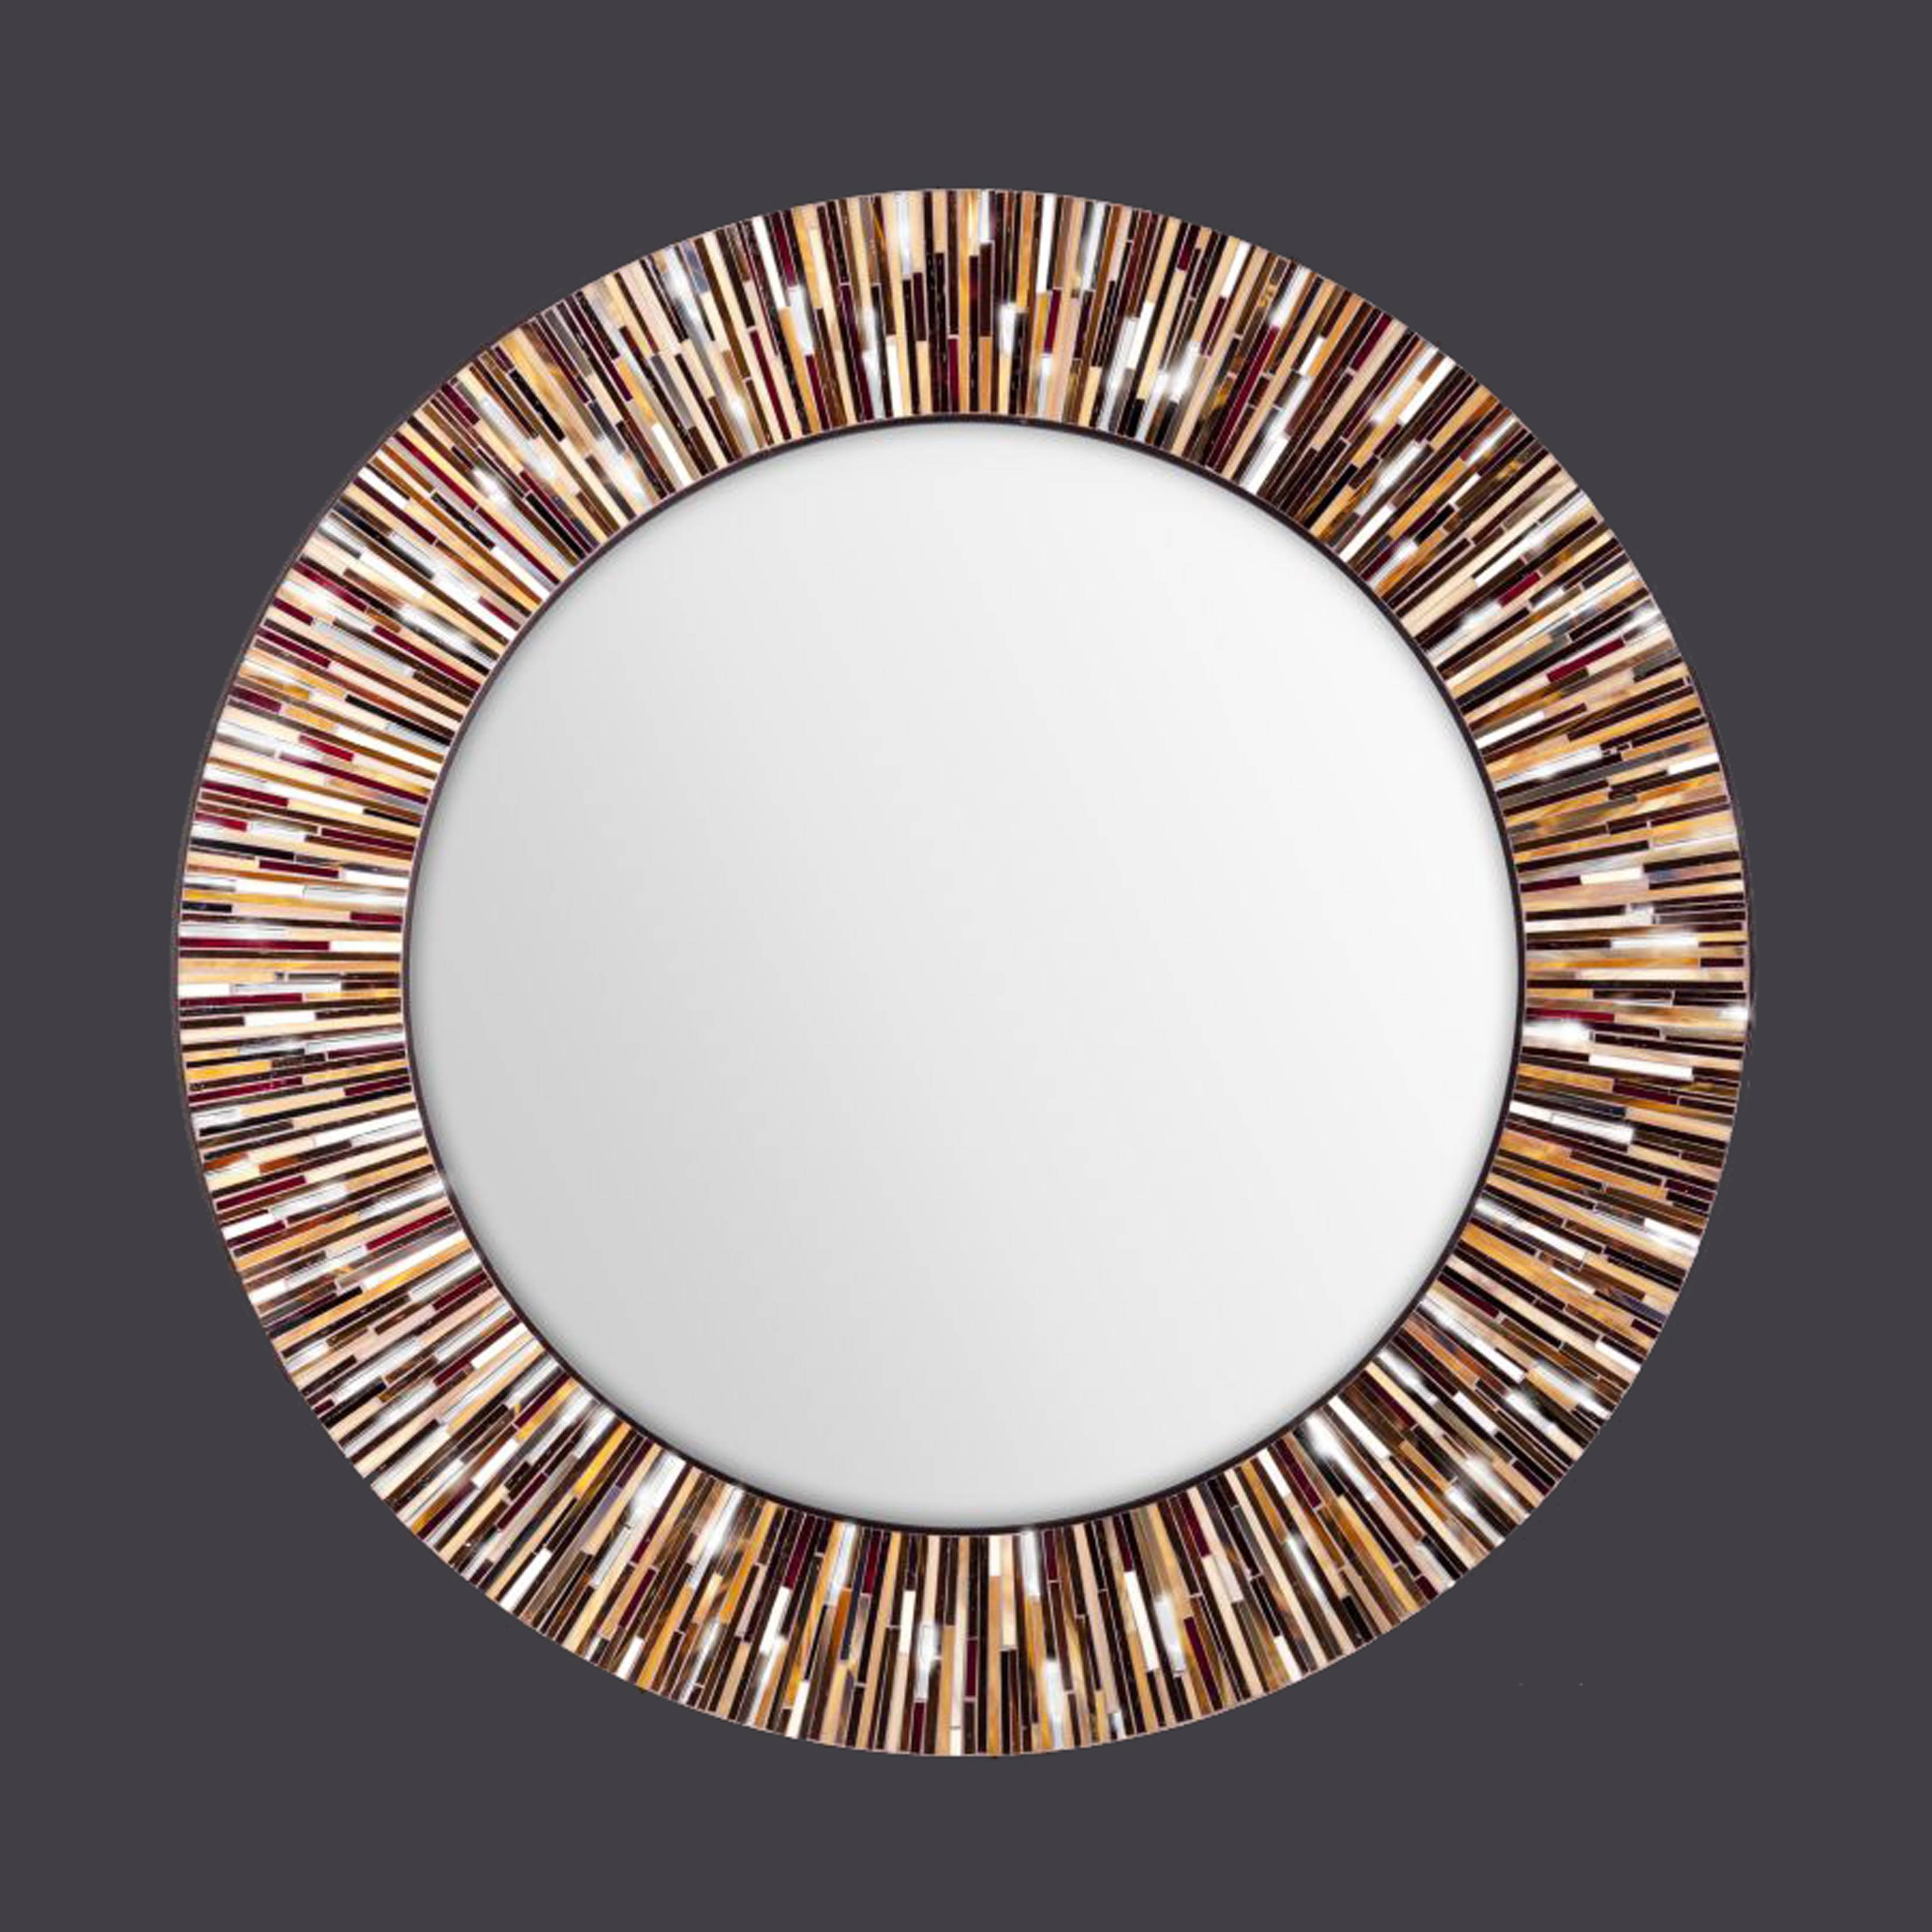 Large Mosai Glass Mirrors with Funky Wall Mirrors (Image 9 of 15)